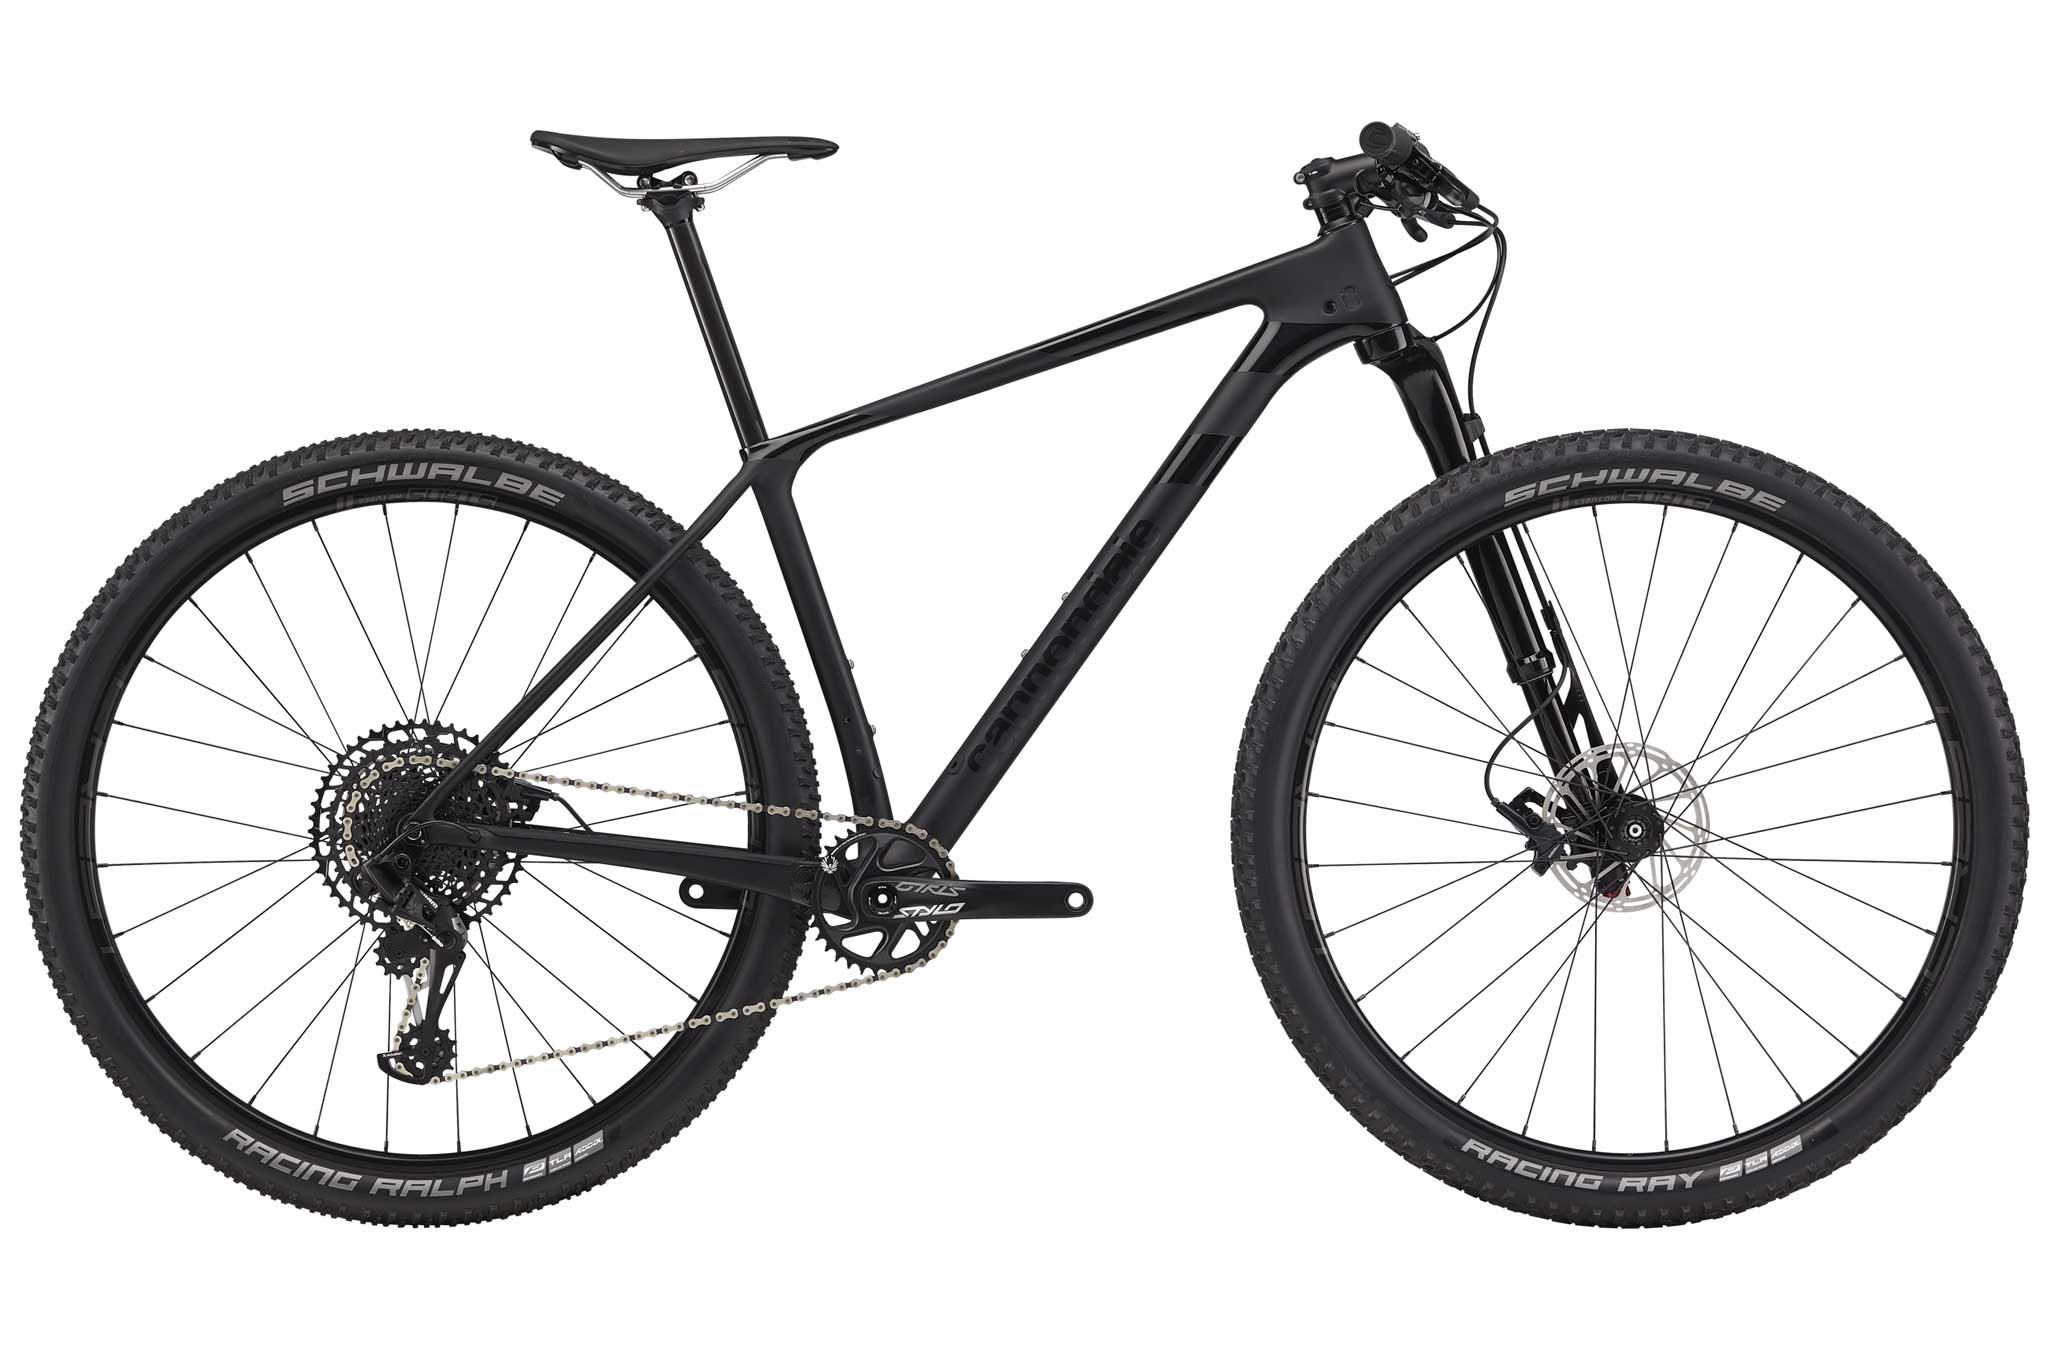 cannondale-fsi-3-2020-mountain-bike-black-EV360849-8500-1